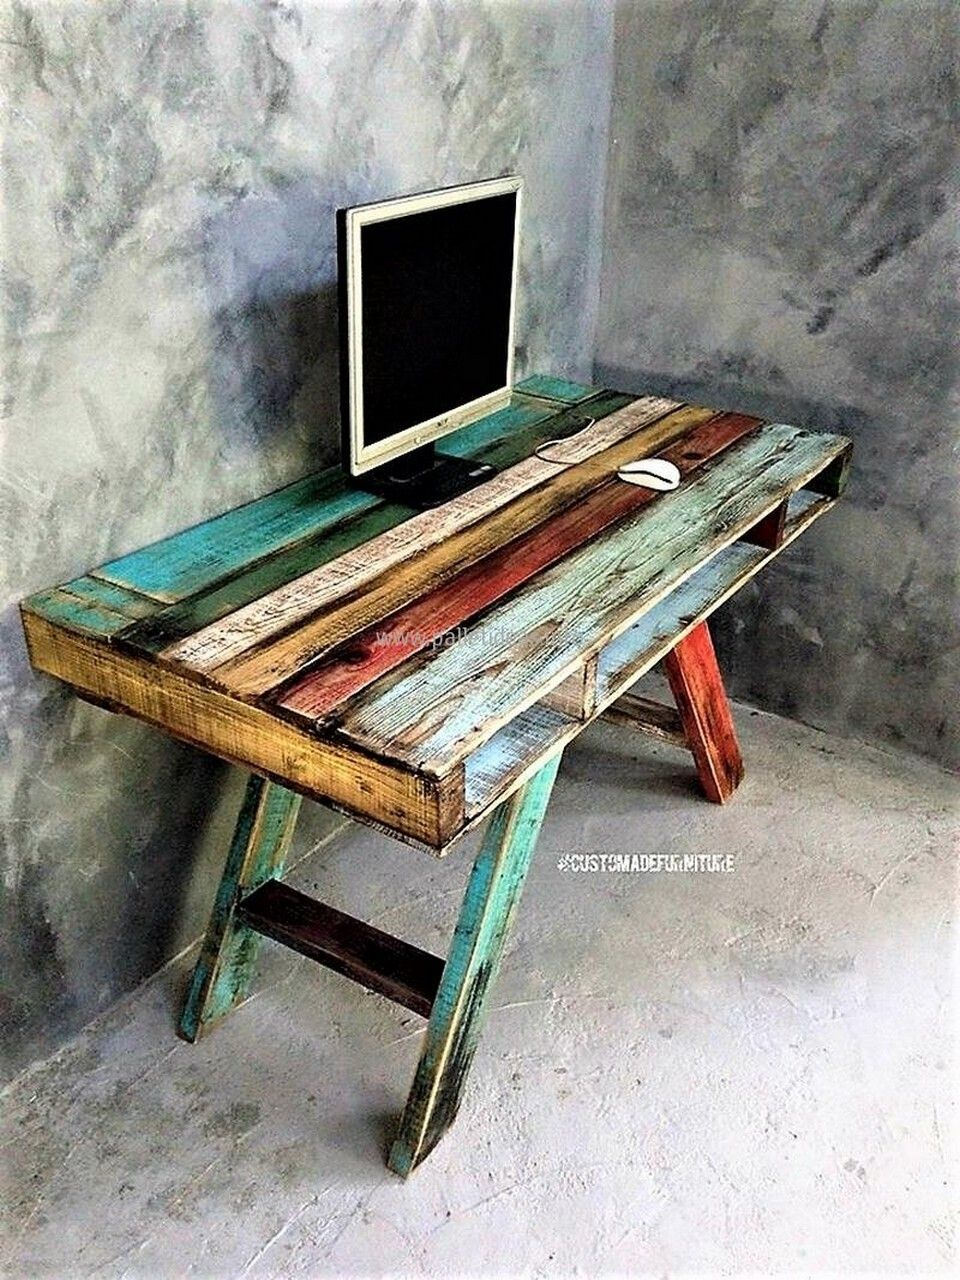 80+ Excellent Ideas With Used Wood Pallets #woodpalletfurniture